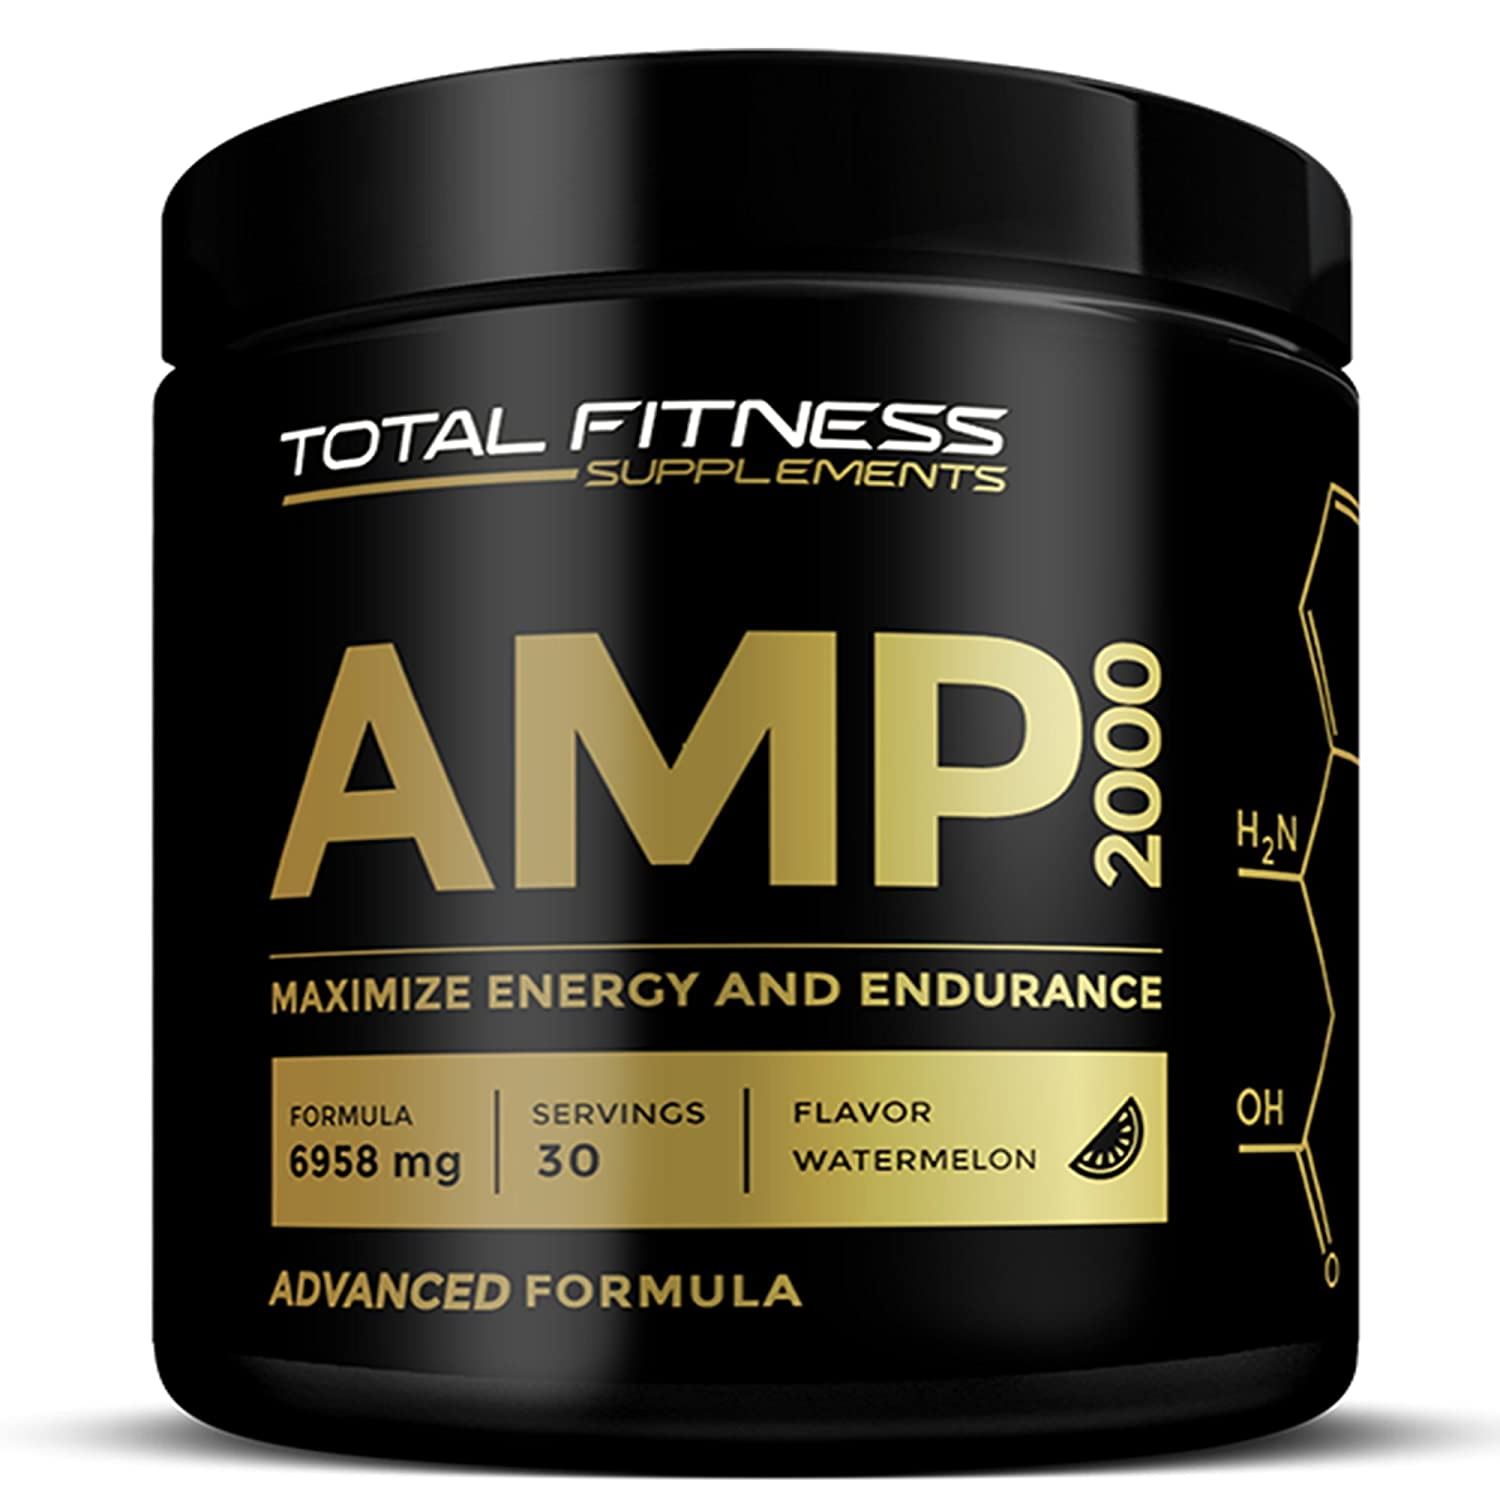 Total Fitness Supplements AMP 2000 Pre Workout Powder with Nitric Oxide Boost, CarnoSyn Beta Alanine, Watermelon, Muscle Builder for Workout Training, 30 Servings